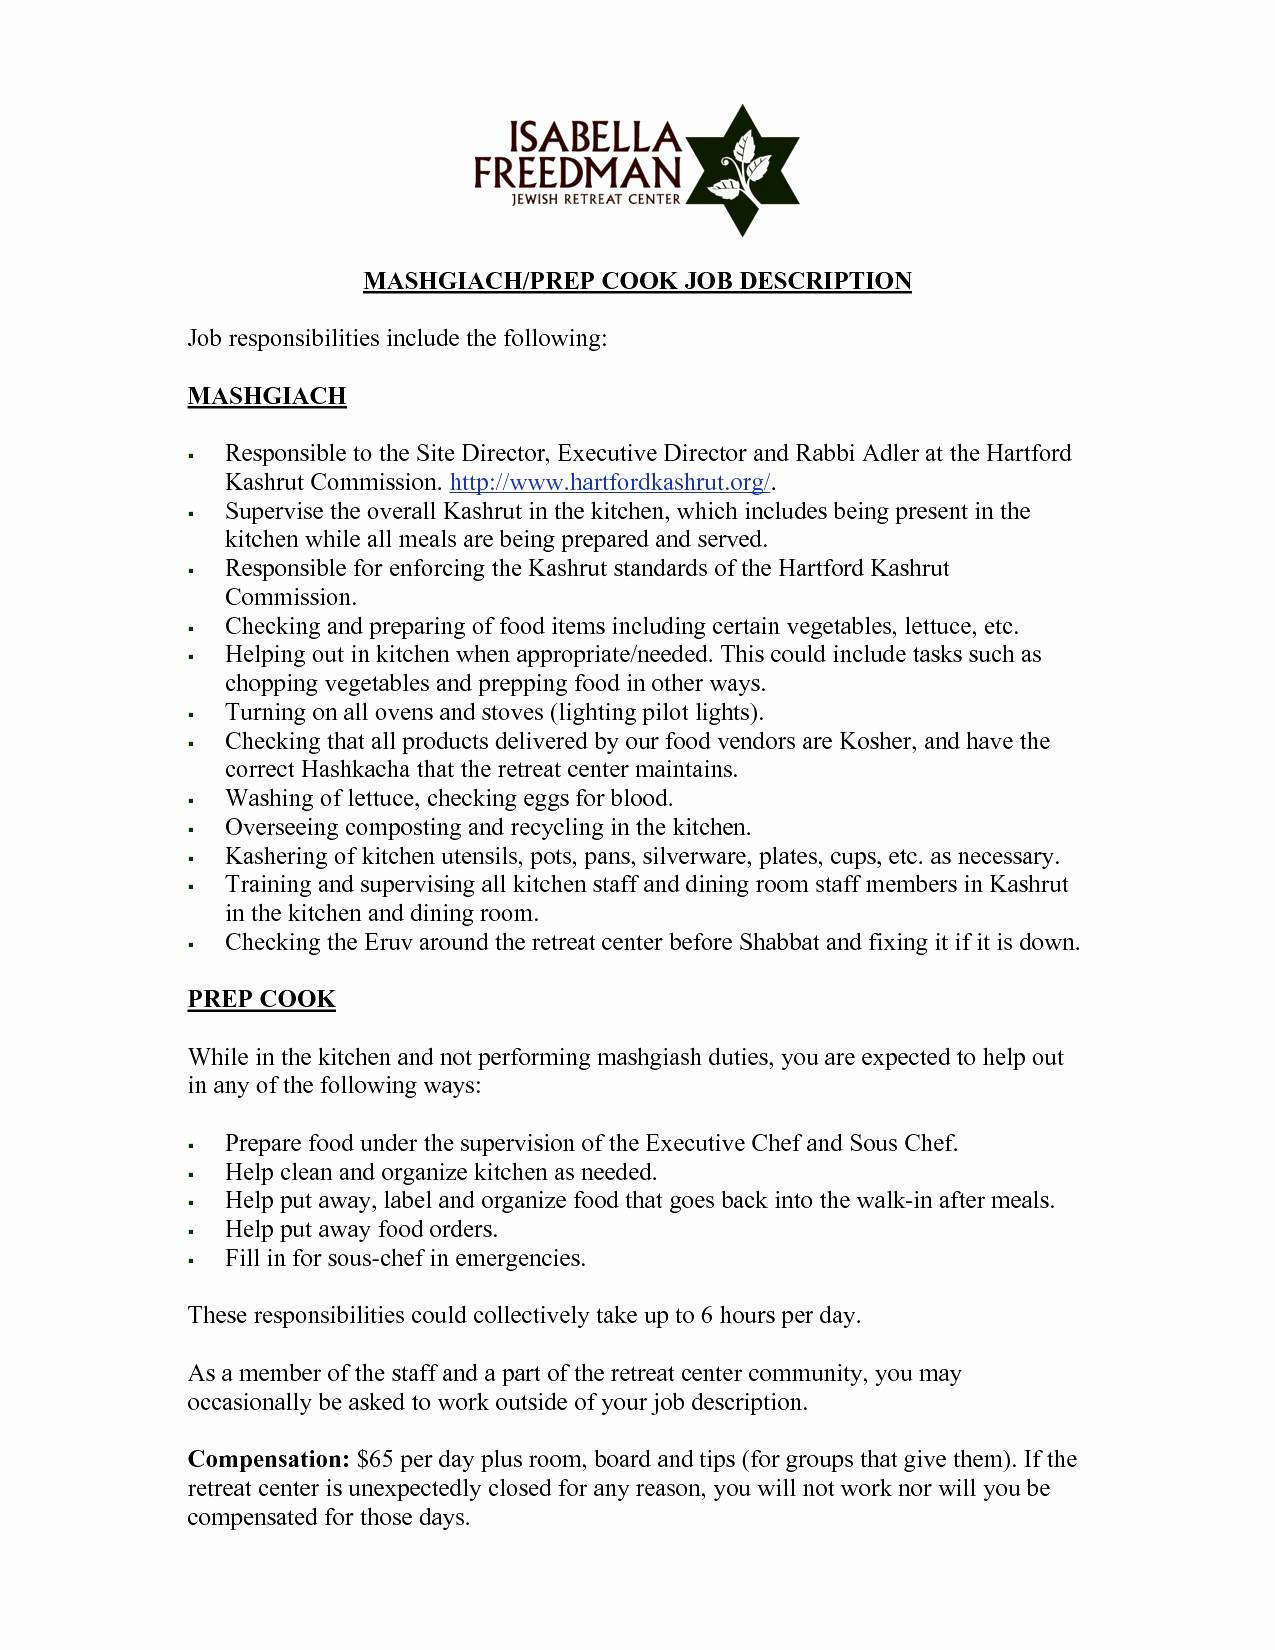 Marketing Letter Template - Help with Writing A Cover Letter Fresh Marketing Director Cover